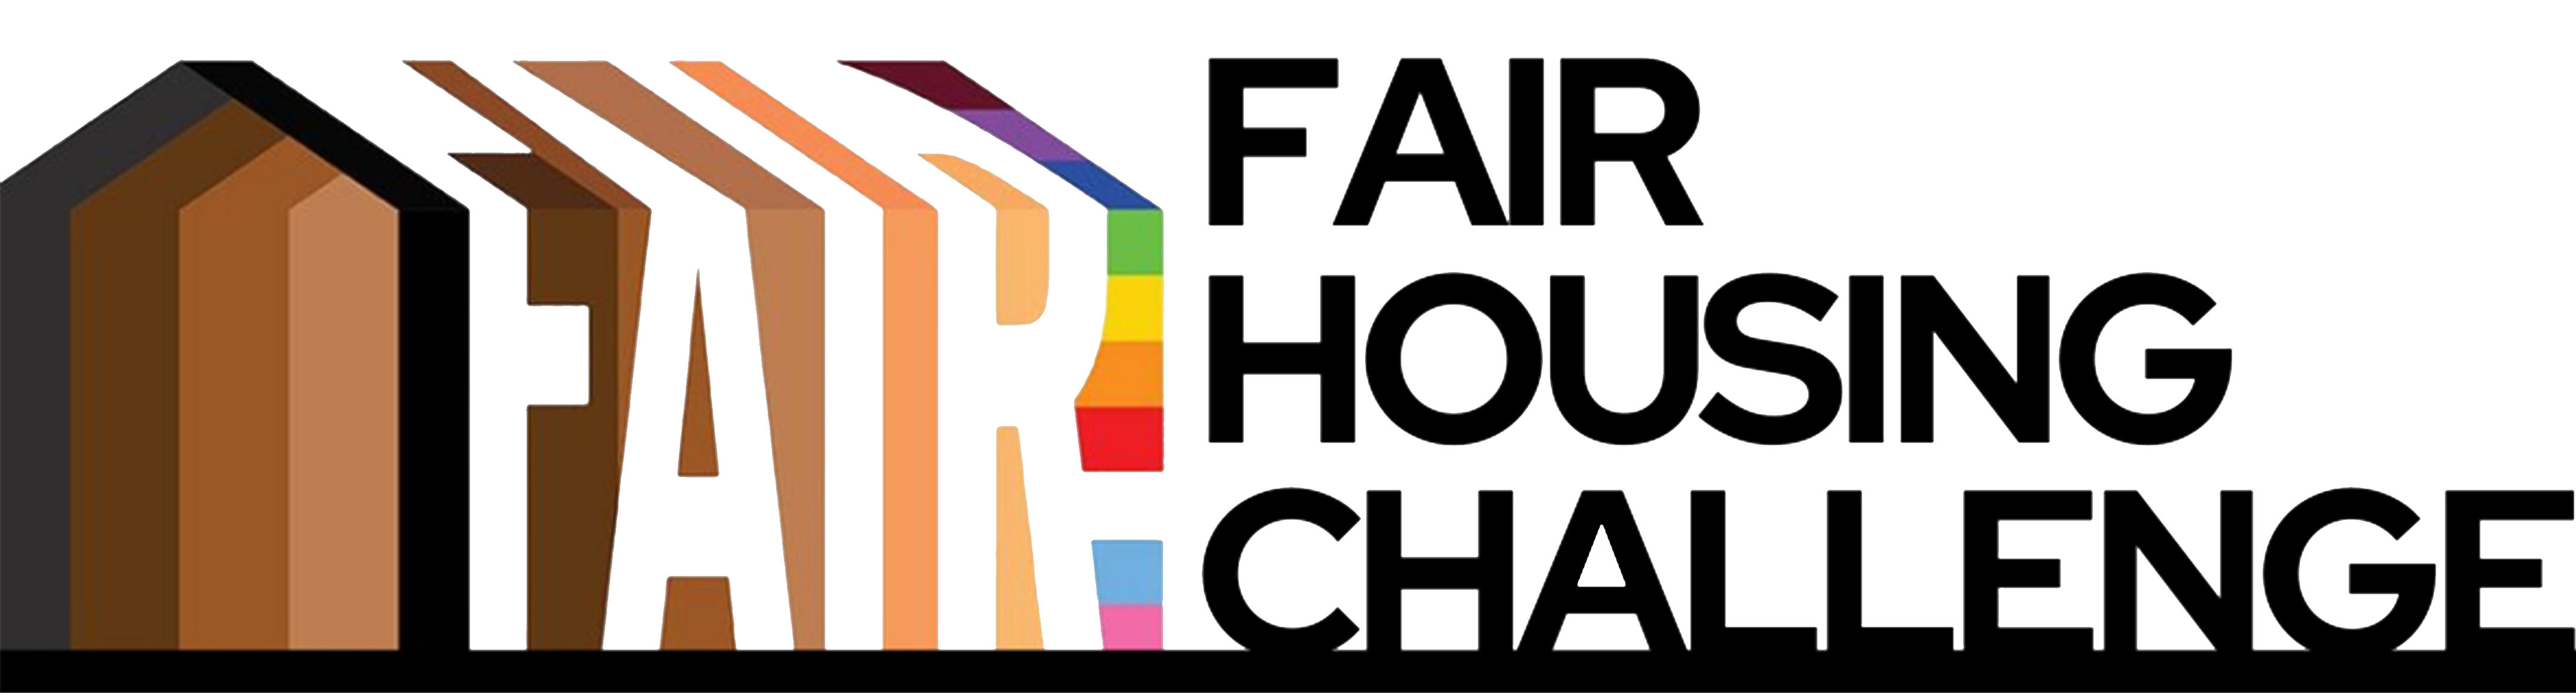 word graphic that says fair housing challenge in black. Fair is written again on left side in skin tone colors